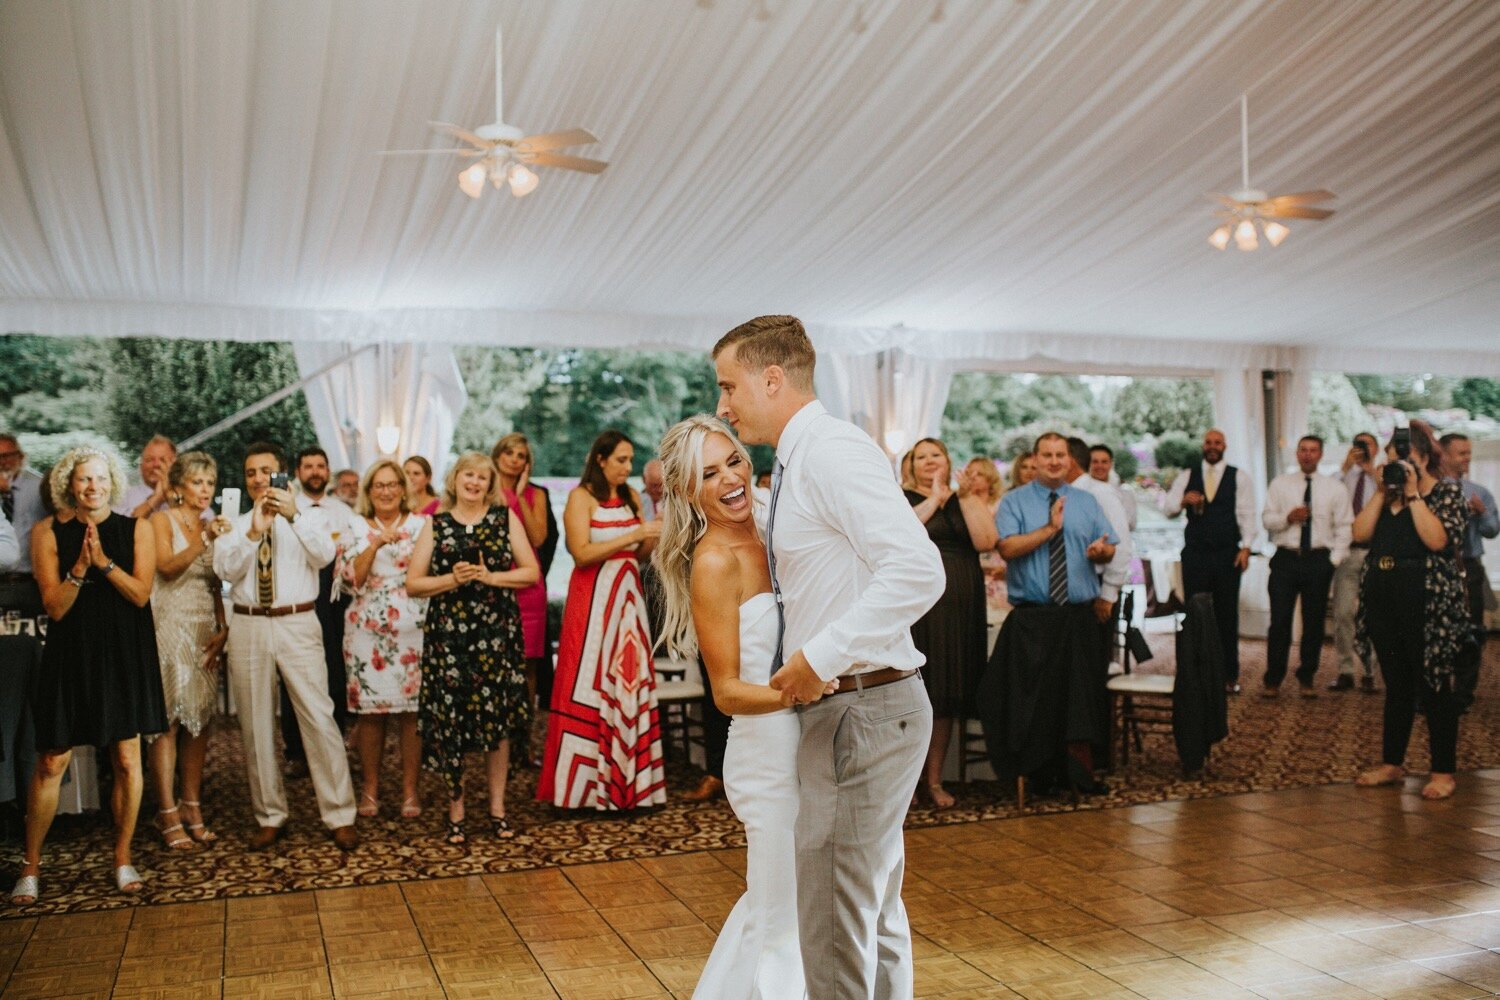 west hills country club, west hills wedding, hudson valley wedding photographer, hudson valley wedding, west hills wedding